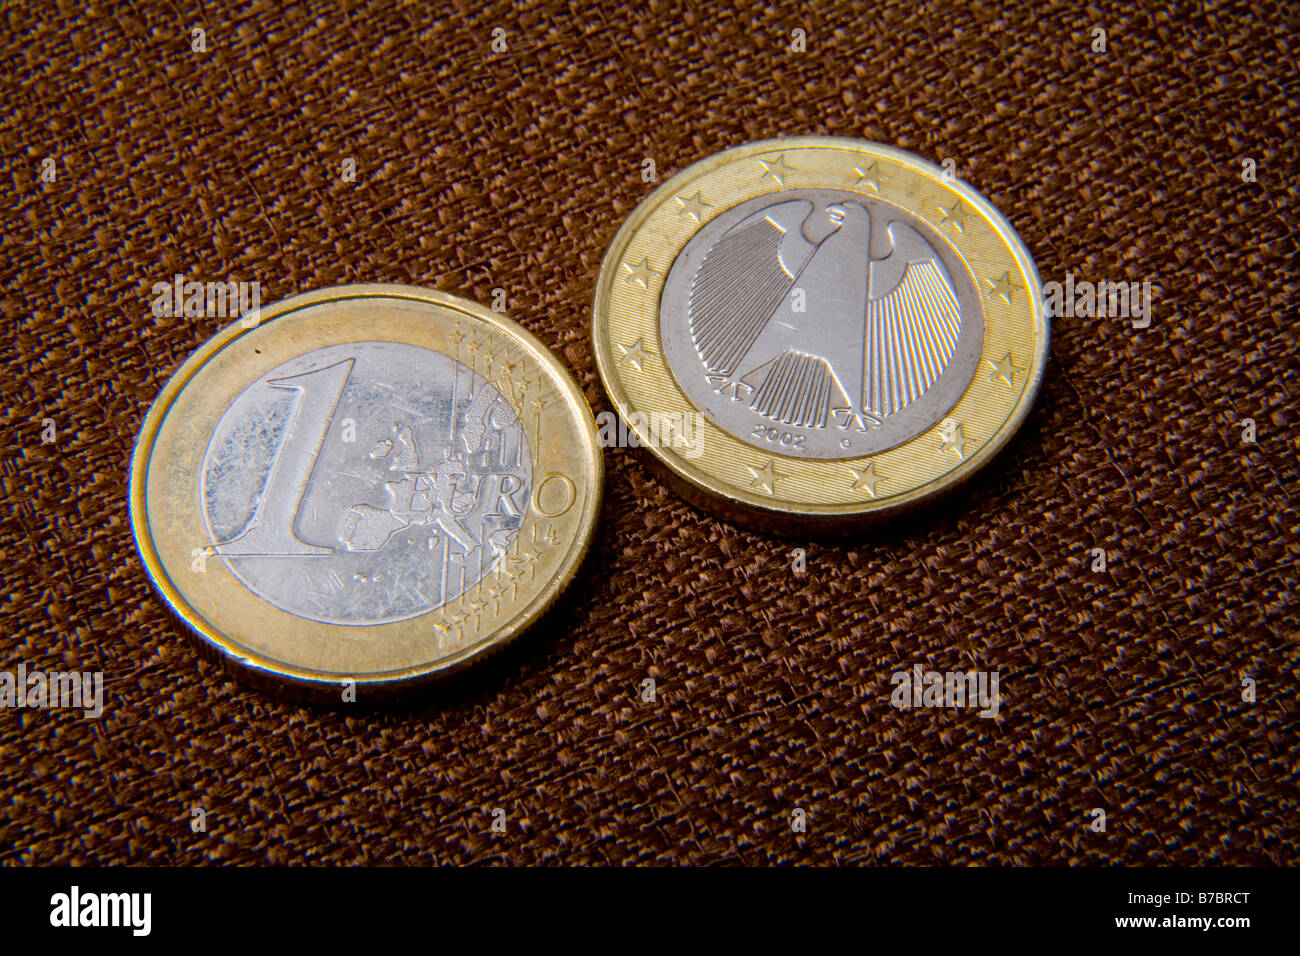 Front and reverse of 1 Euro coin from Germany Reverse image is different in each European Union nation  economy - Stock Image